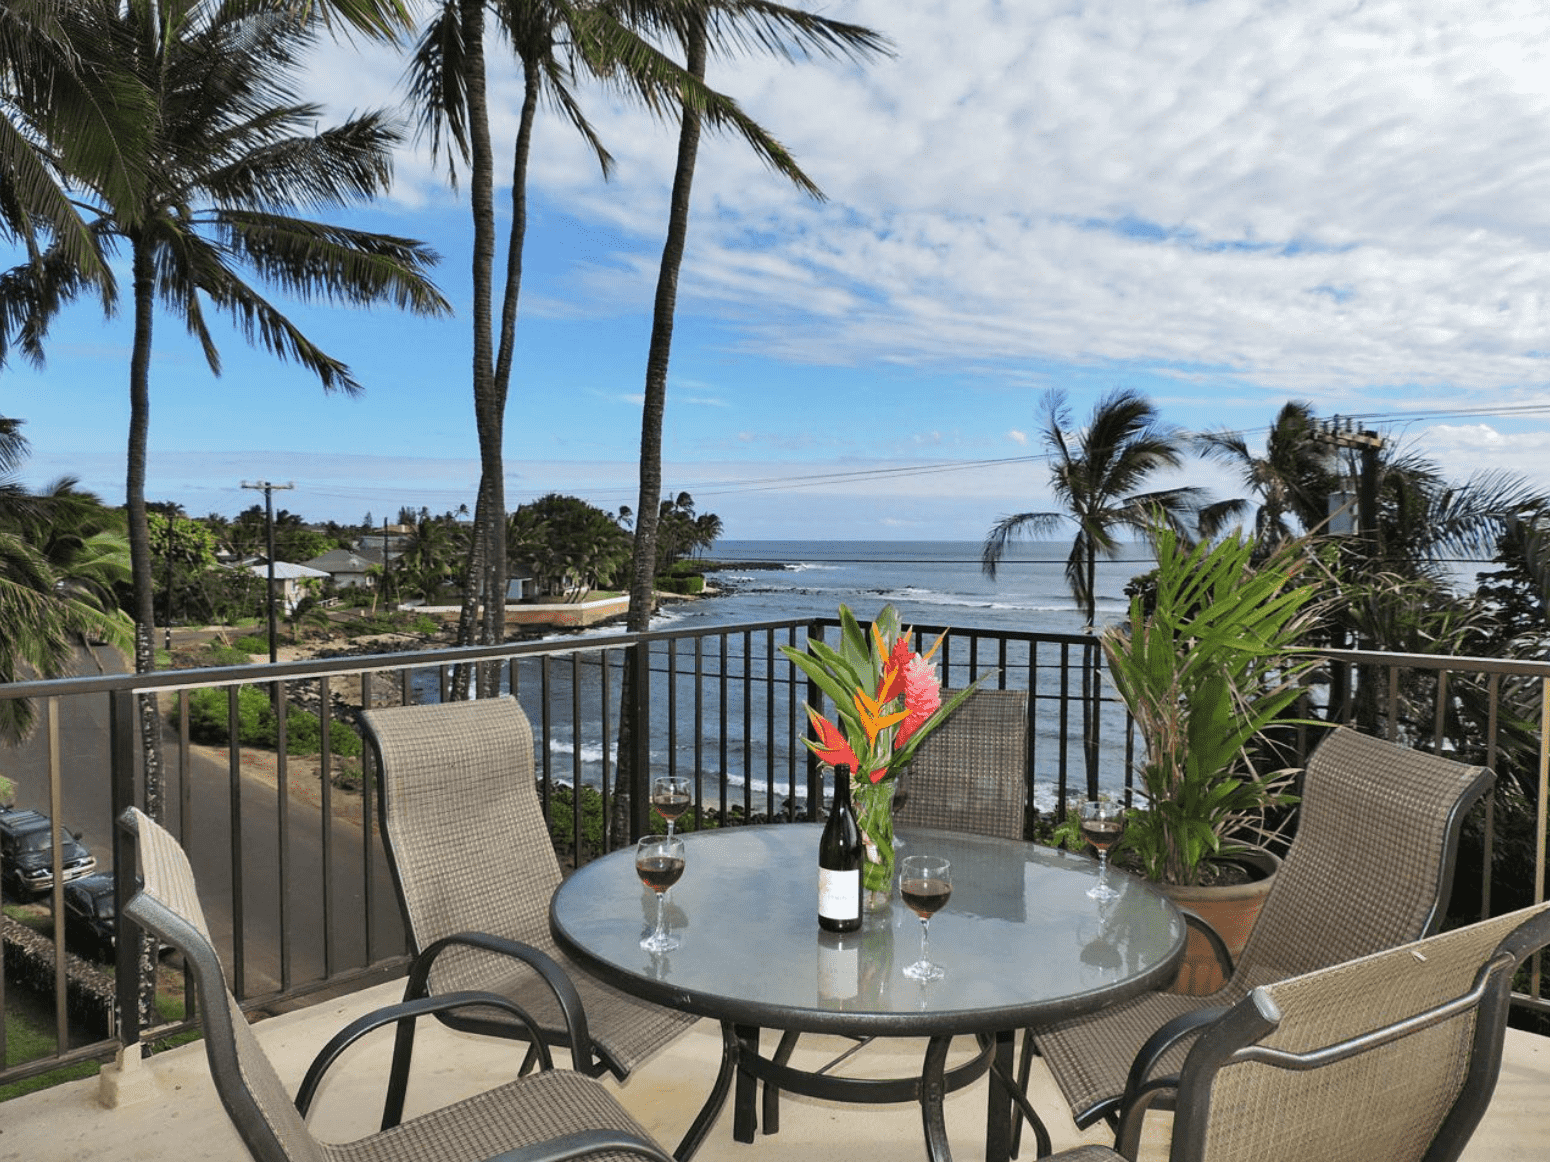 Prince Kuhio 401 kauai vacation rental